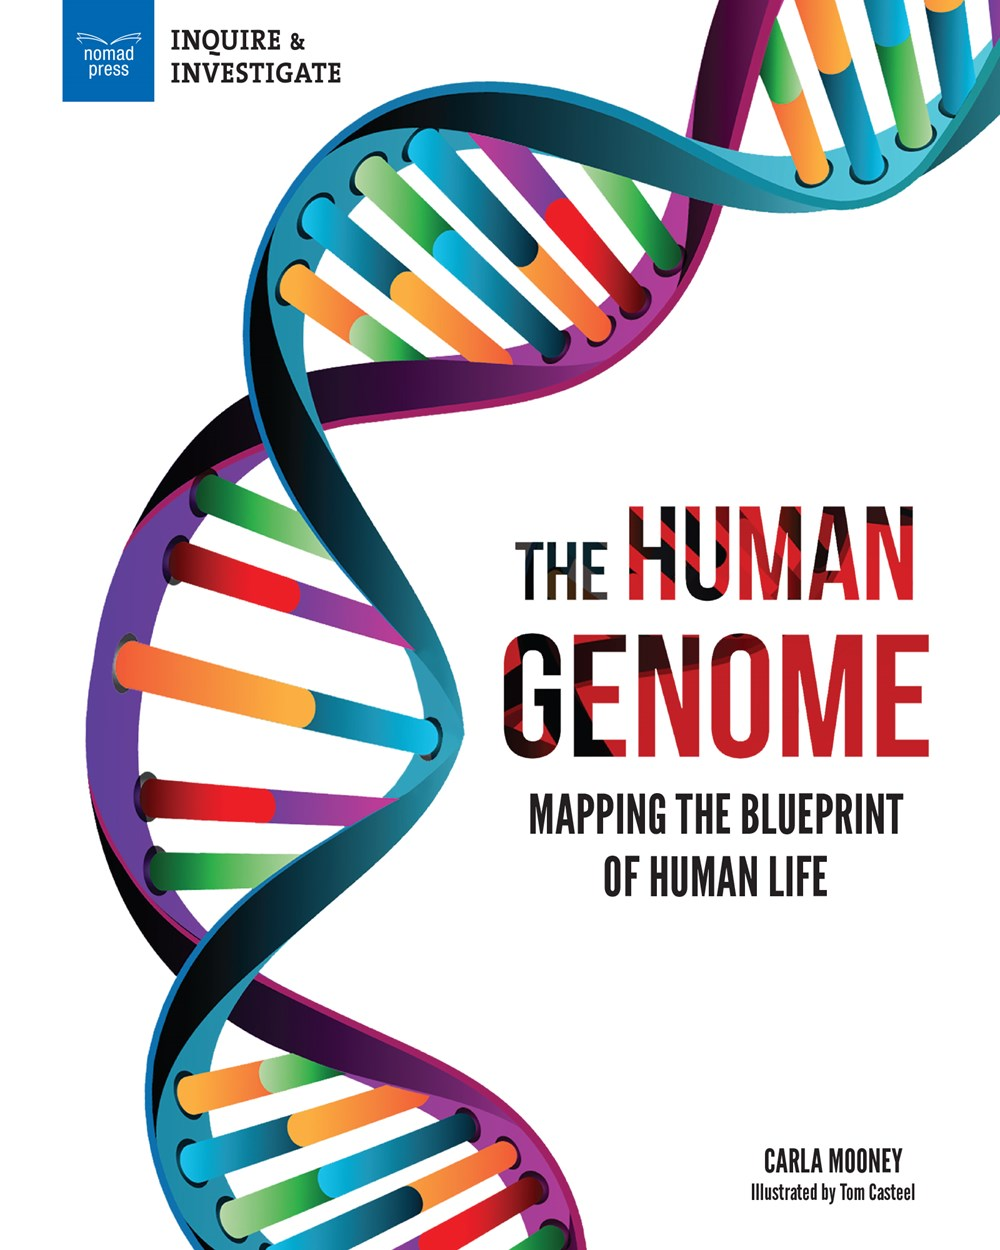 The Human Genome: Mapping the Blueprint of Human Life